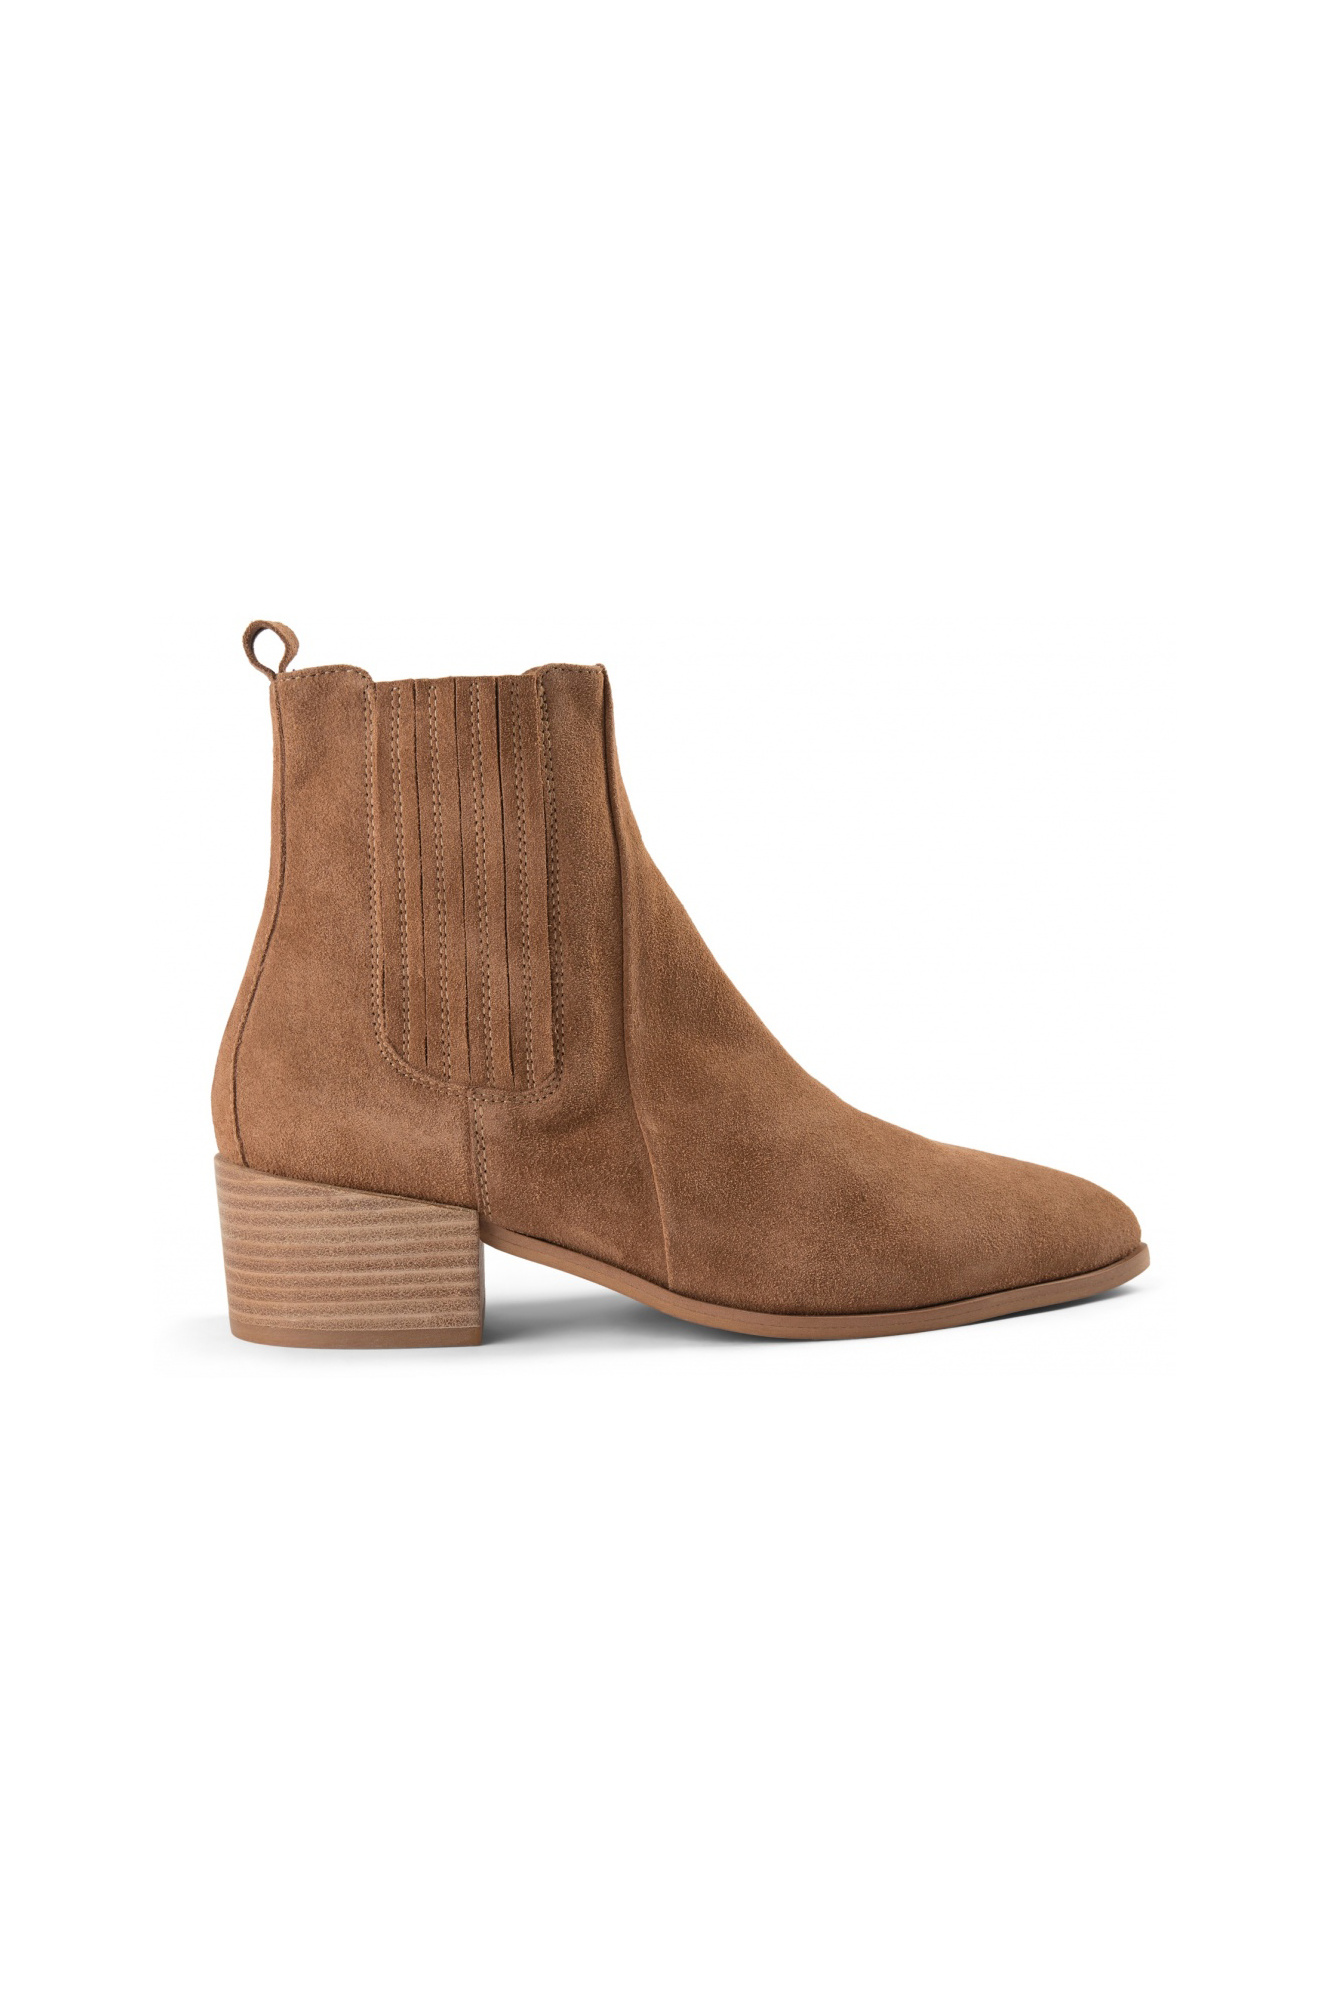 Sage Boot - Taupe Suede-1